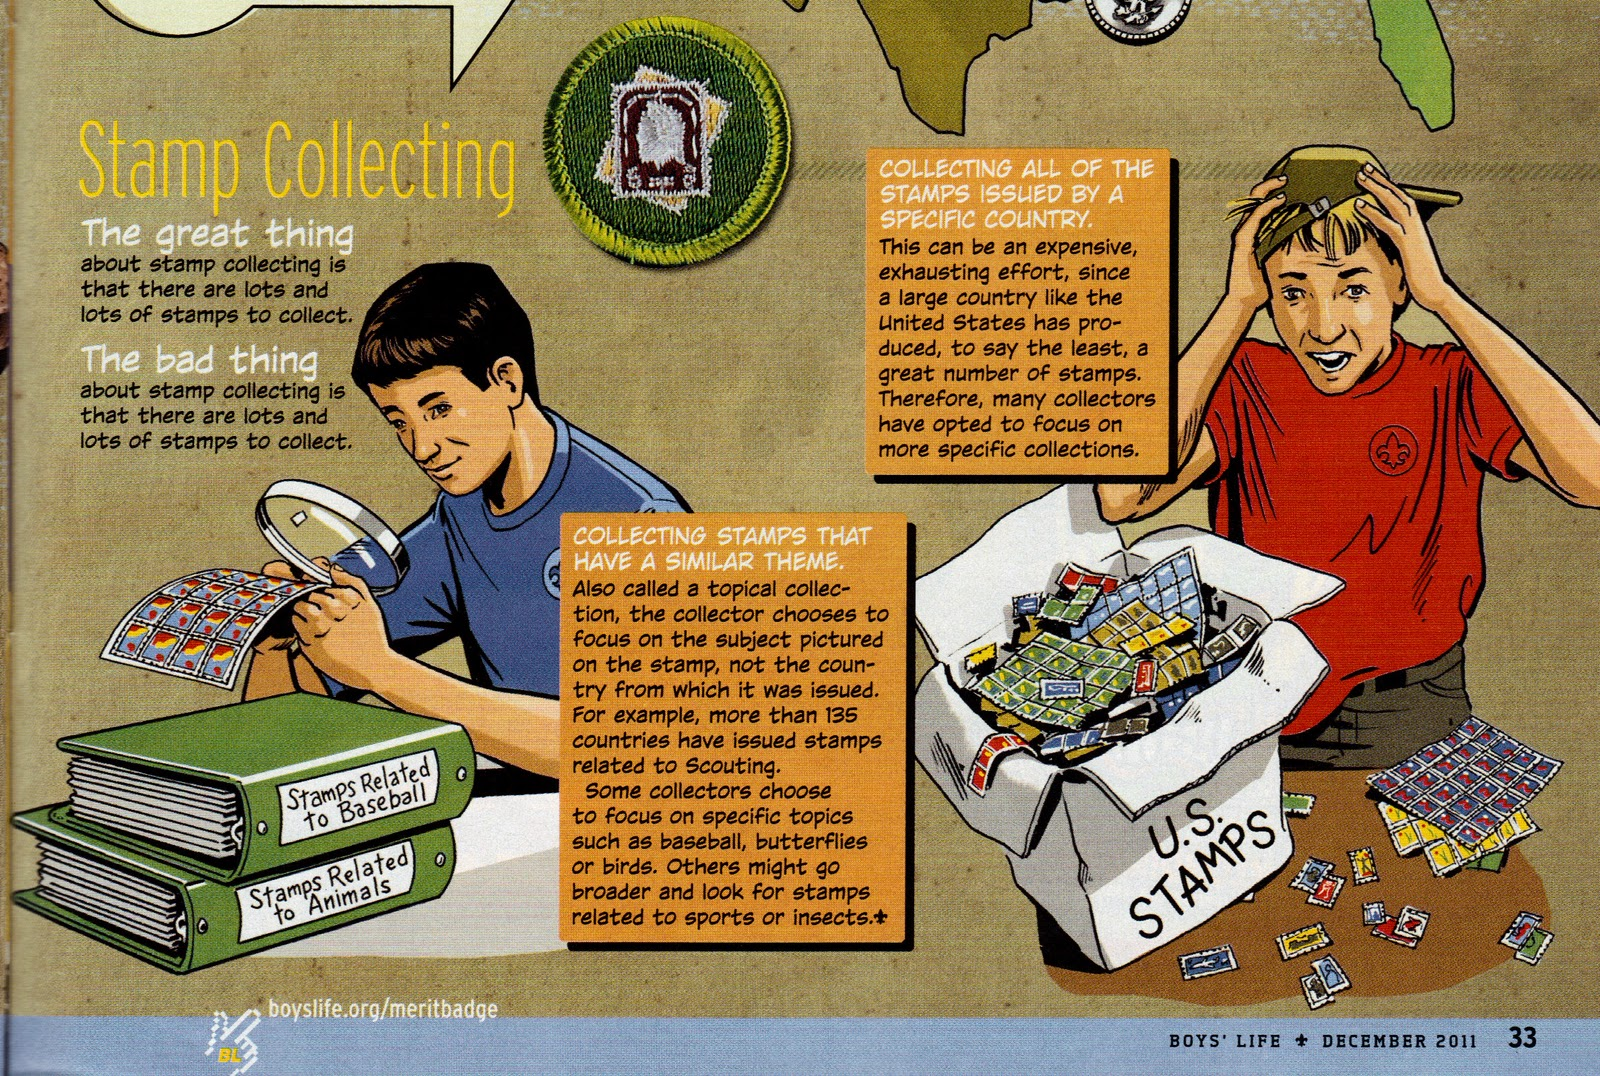 Illustration from Boy's Life, the magazine published by Boy Scouts of America, December 2011 edition.